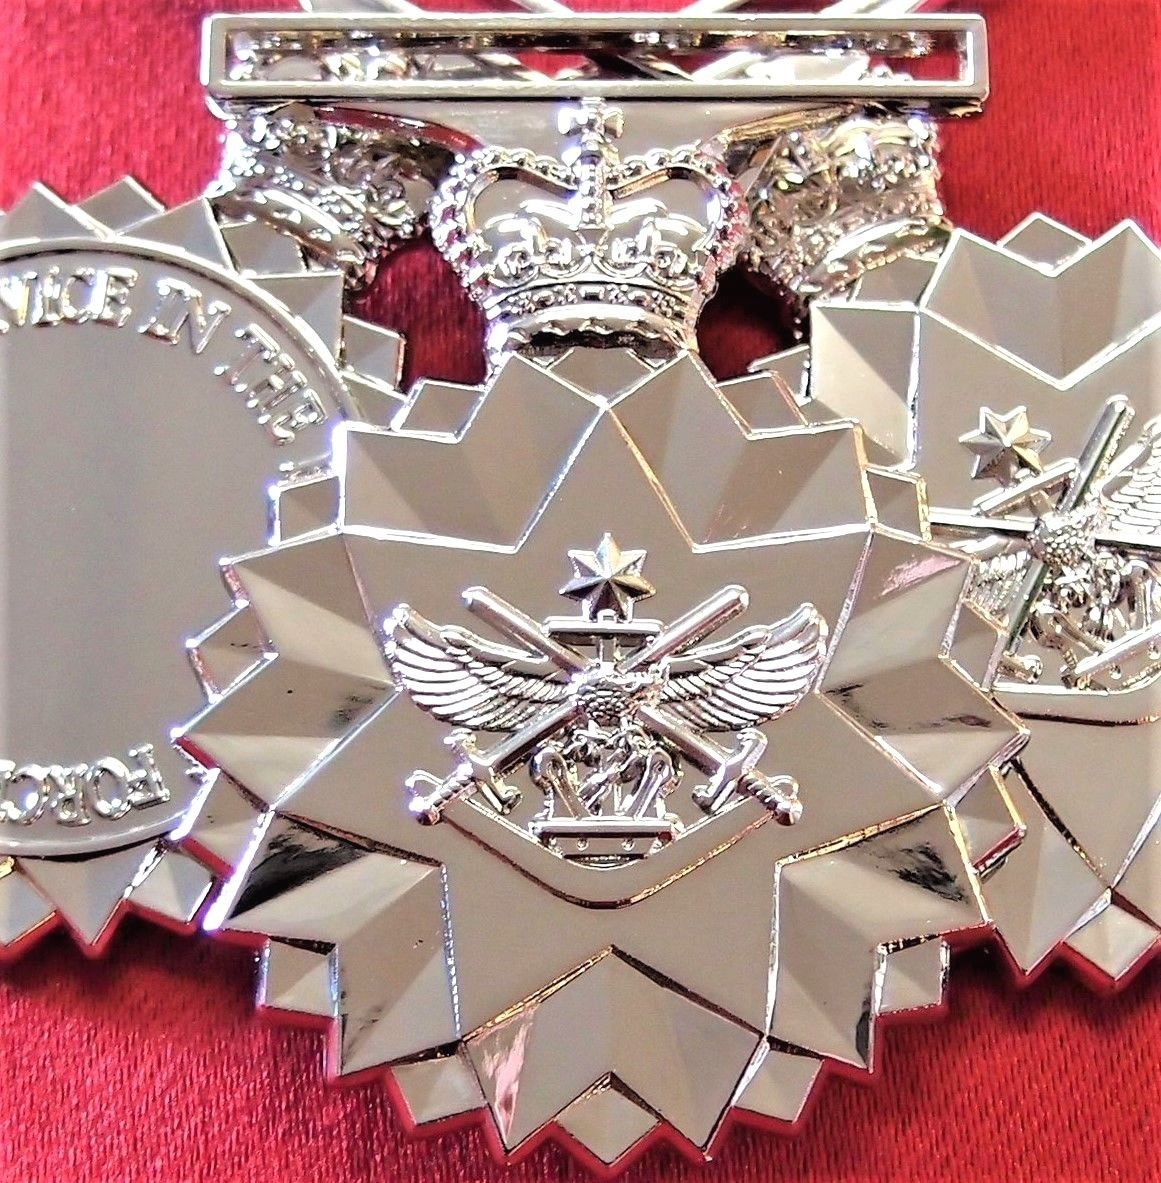 *10* AUSTRALIAN DEFENCE FORCE SERVICE MEDAL ARMY NAVY AIR FORCE REPLICA ANZAC DFSM